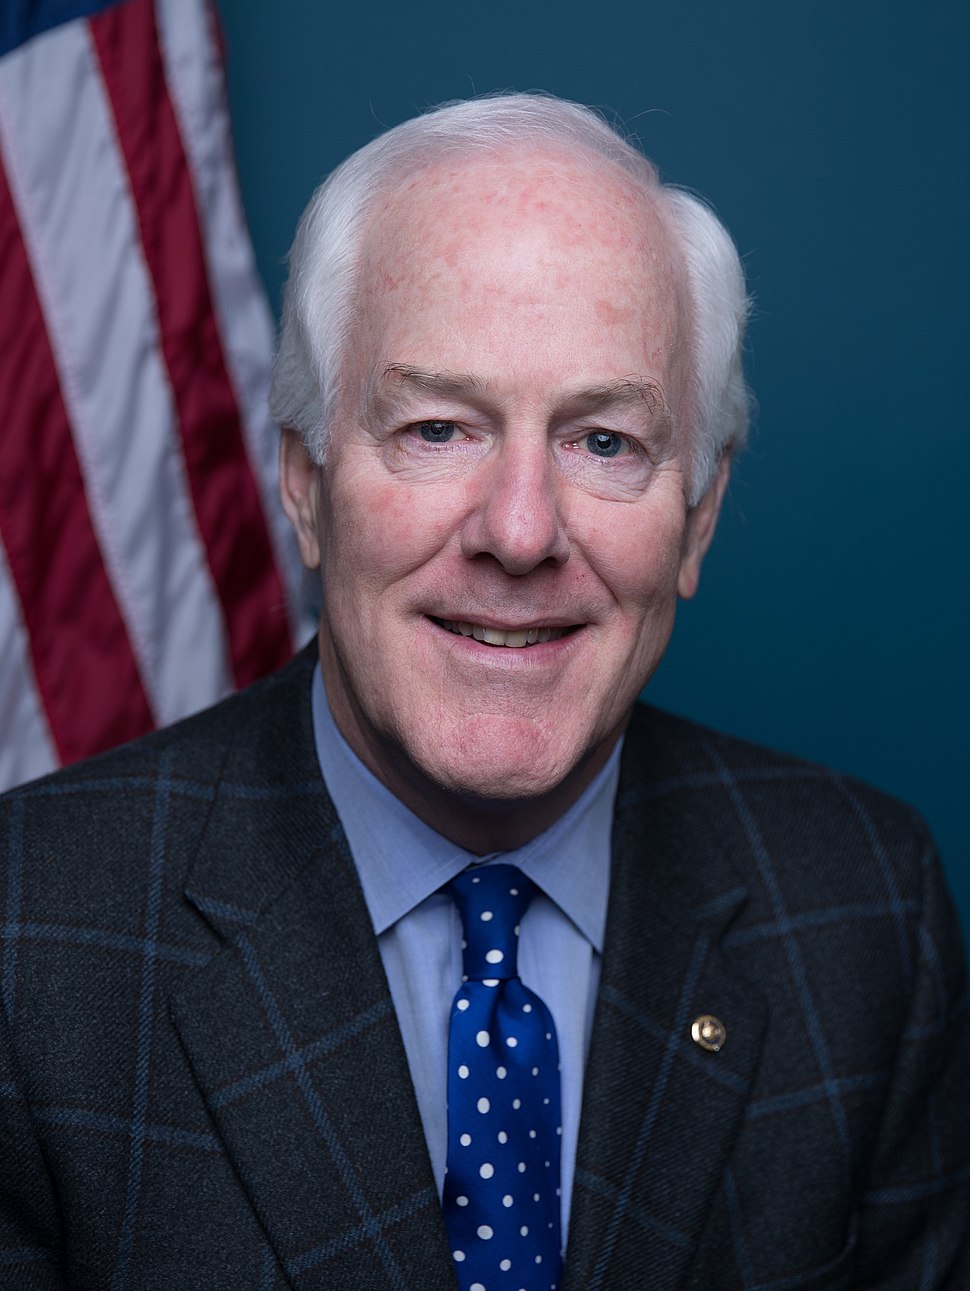 John Cornyn official senate portrait